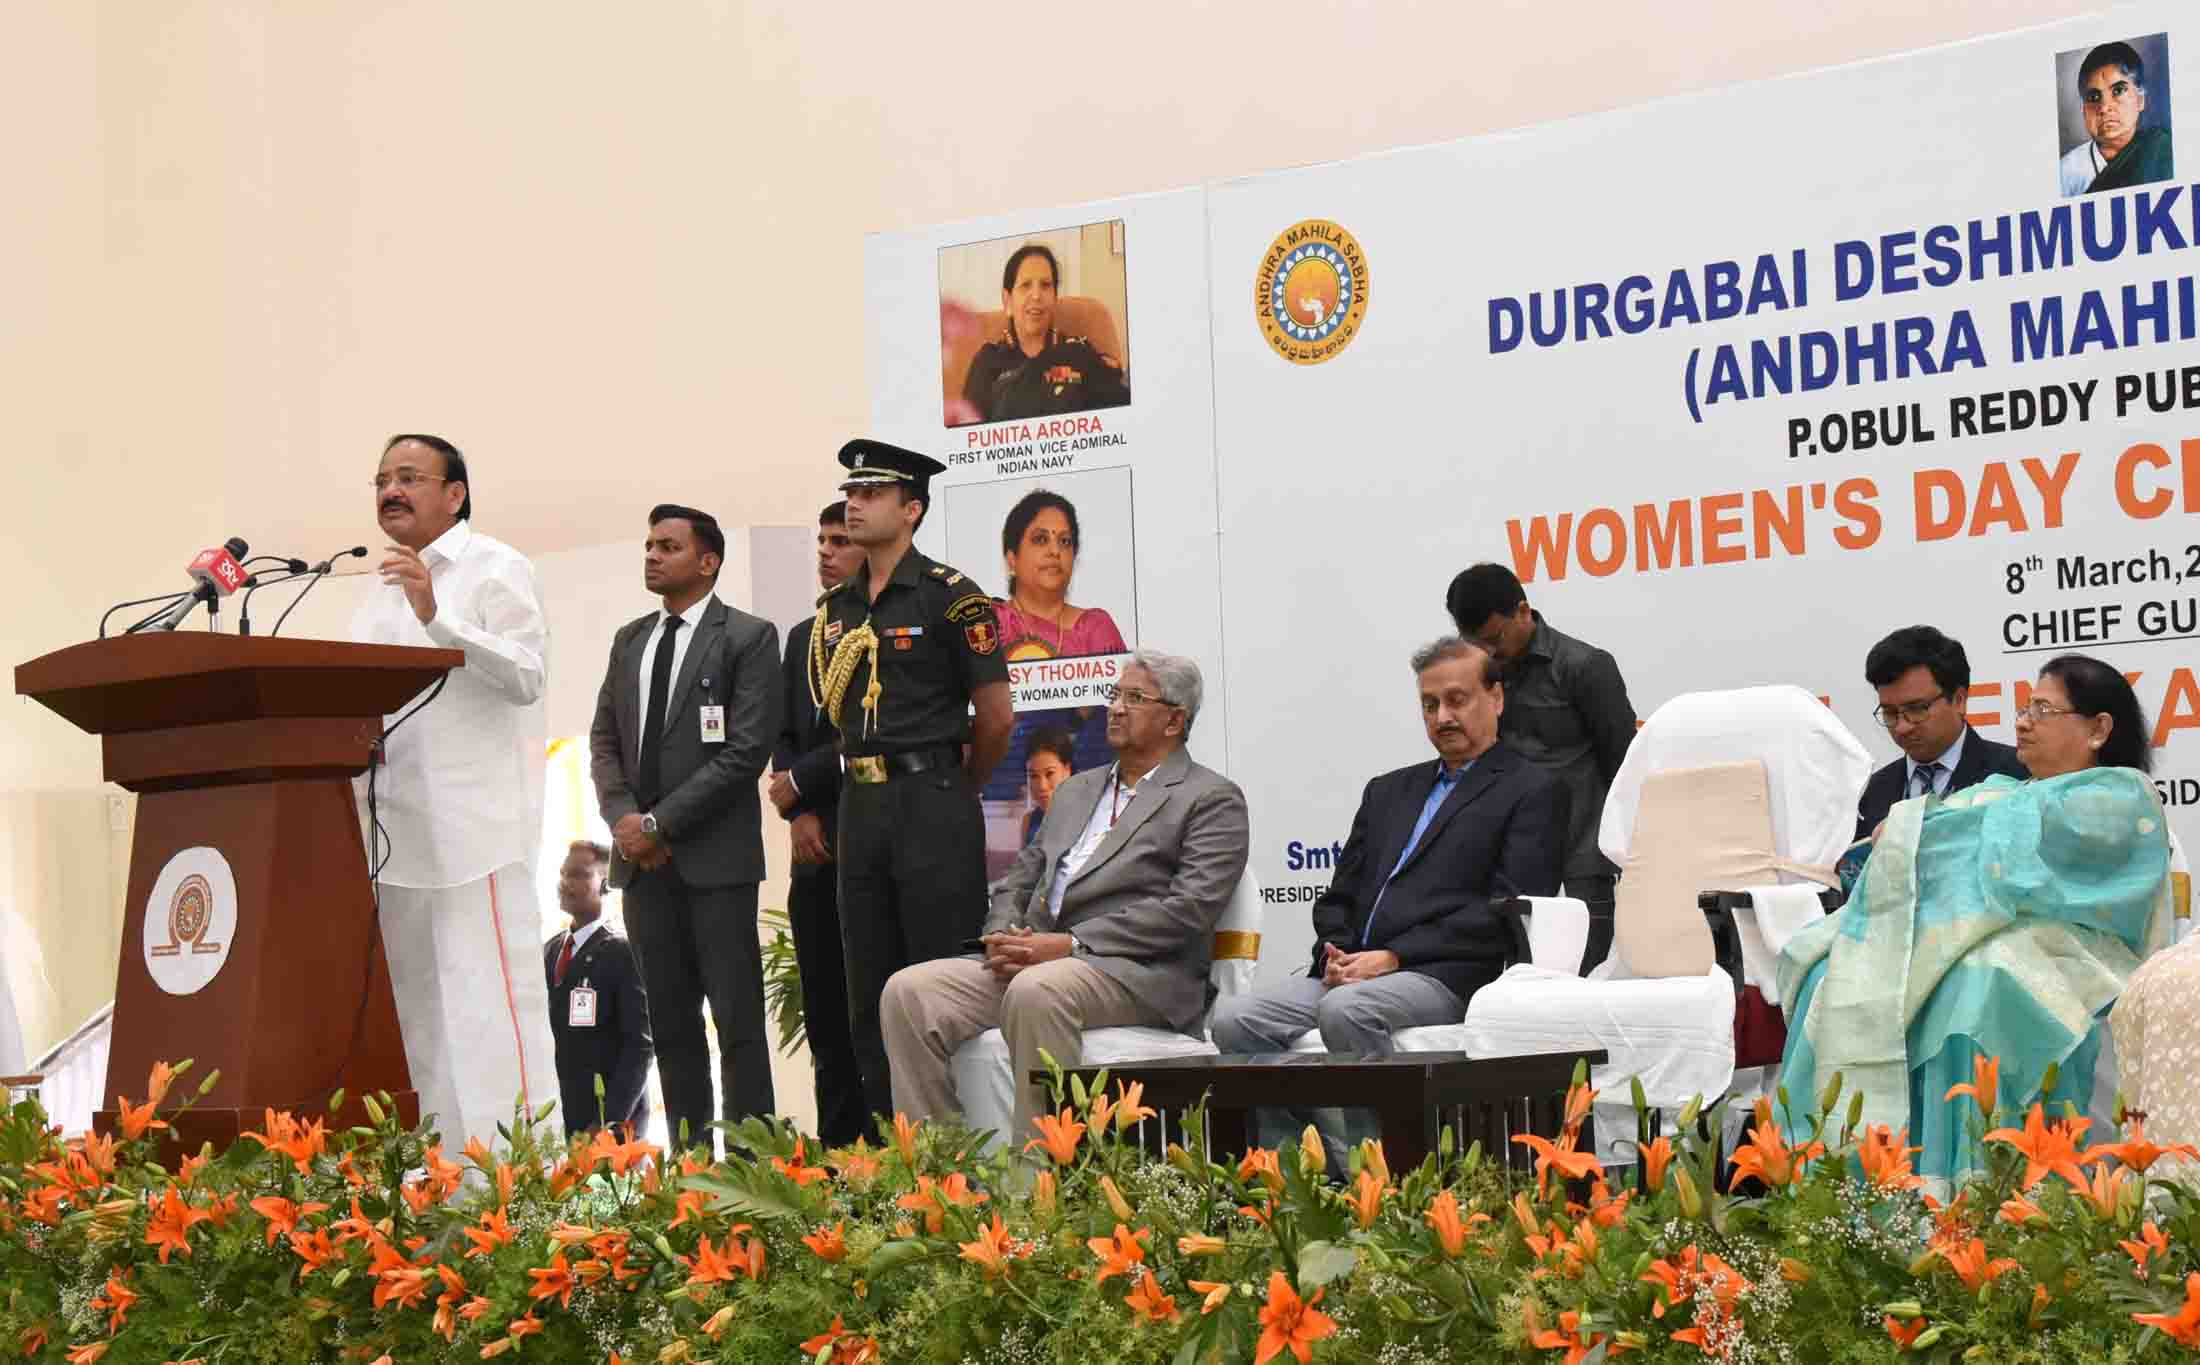 The Vice President, Shri M. Venkaiah Naidu addressing the gathering at the Women's Day celebrations, organised by Durgabai Deshmukh Mahila Sabha (formerly Andhra Mahila Sabha) – P.Obul Reddy Public School, in Hyderabad on March 08, 2020.